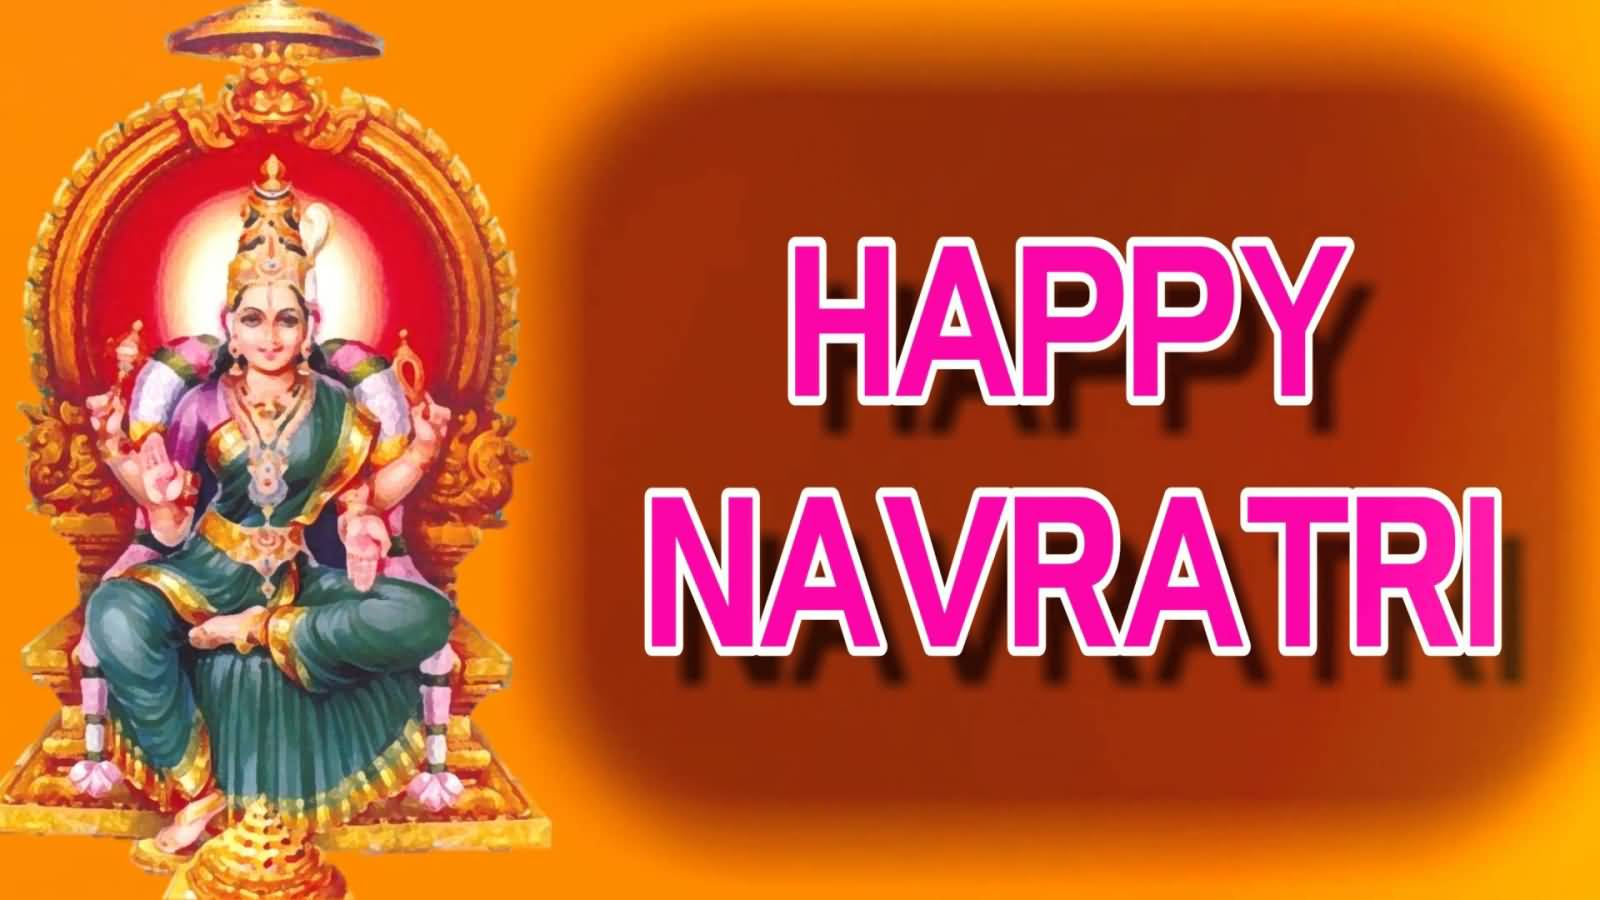 55 best pictures and images of navratri wishes happy navratri greetings kristyandbryce Choice Image